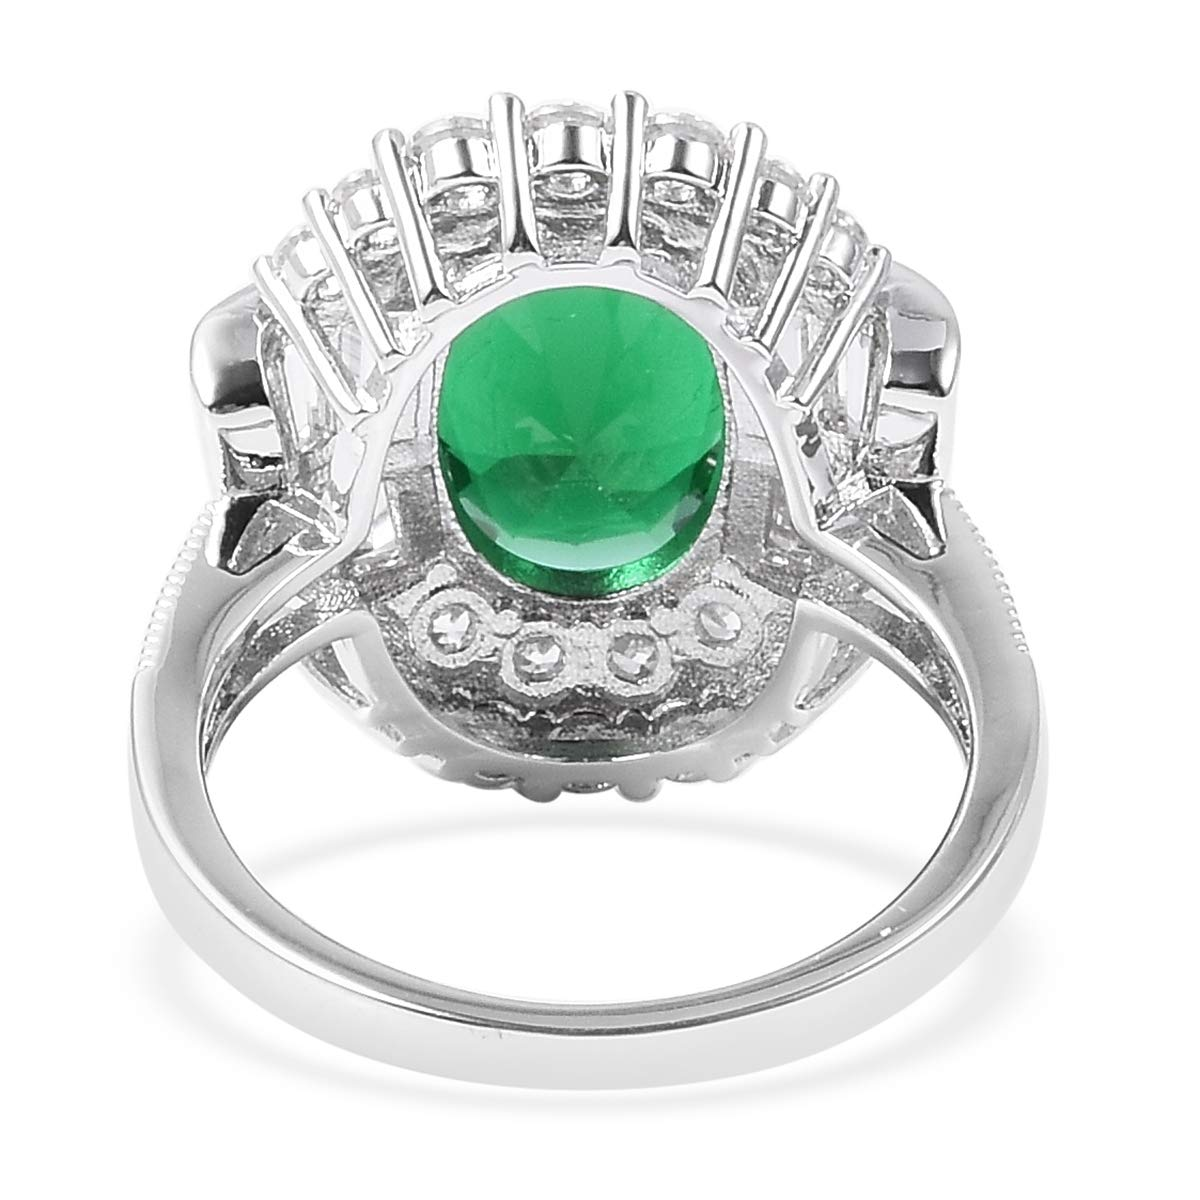 Shop LC Delivering Joy Statement Ring Green Glass White Cubic Zirconia CZ Gift Jewelry for Women Size 8 Cttw 8.7